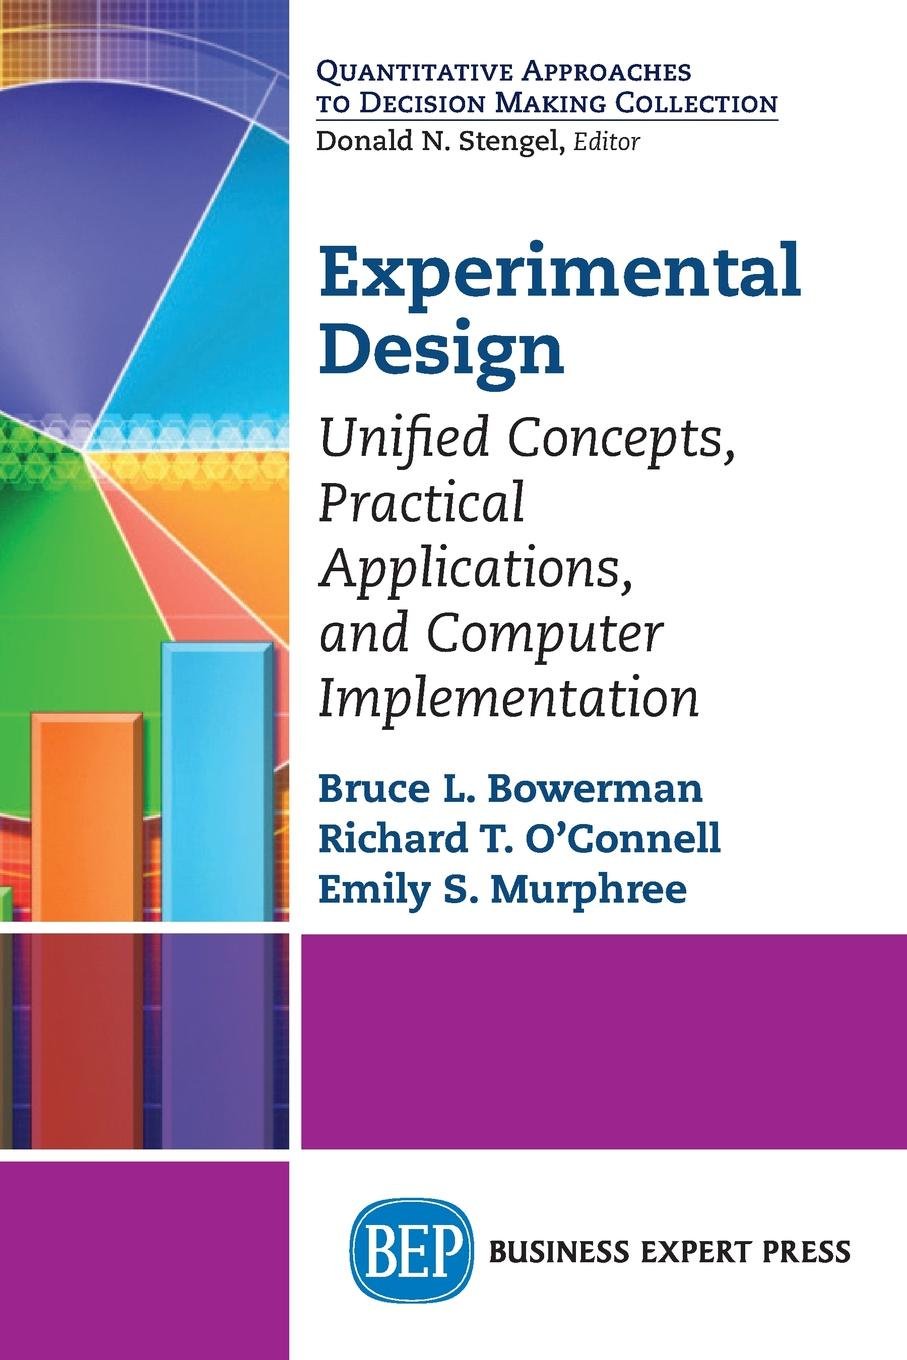 Experimental Design. Unified Concepts, Practical Applications, and Computer Implementation This book is a concise and innovative book that gives a complete...